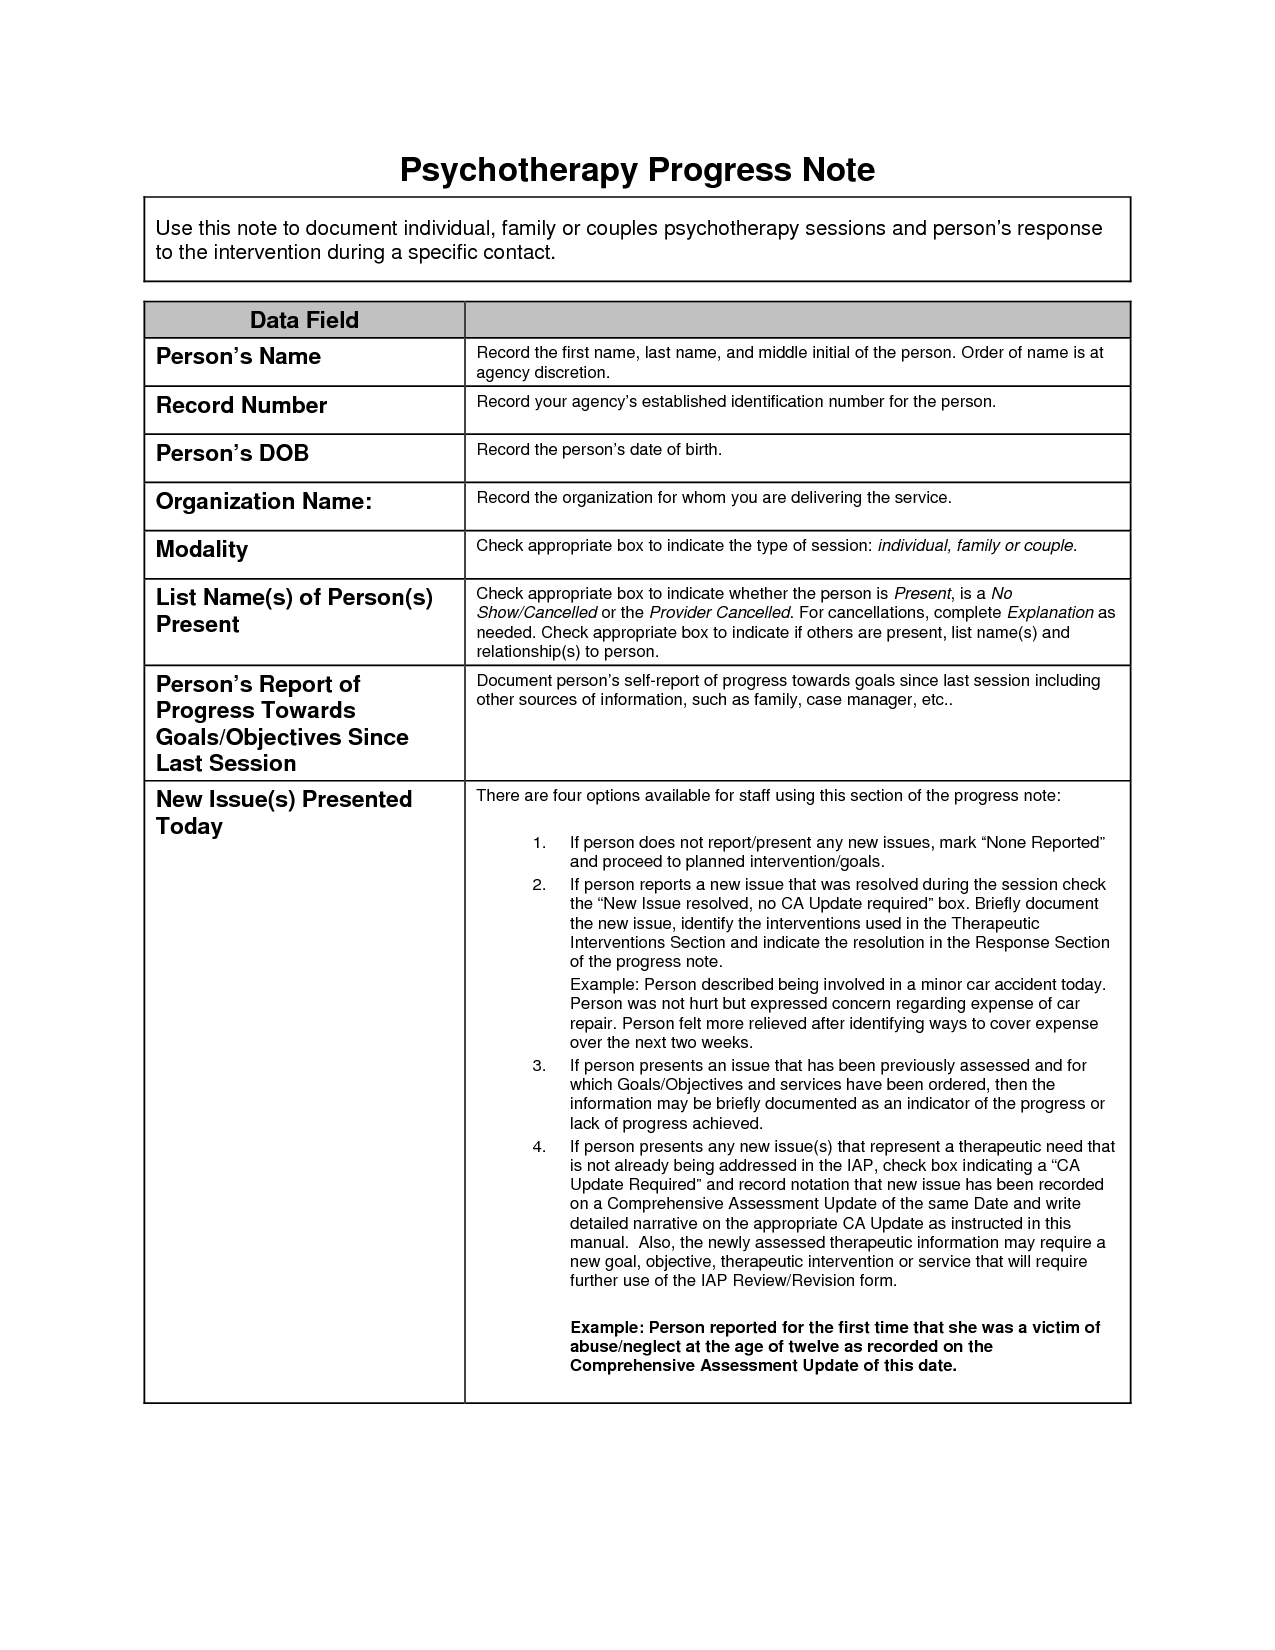 Sample Psychotherapy Progress Notes Template | Art therapy ...